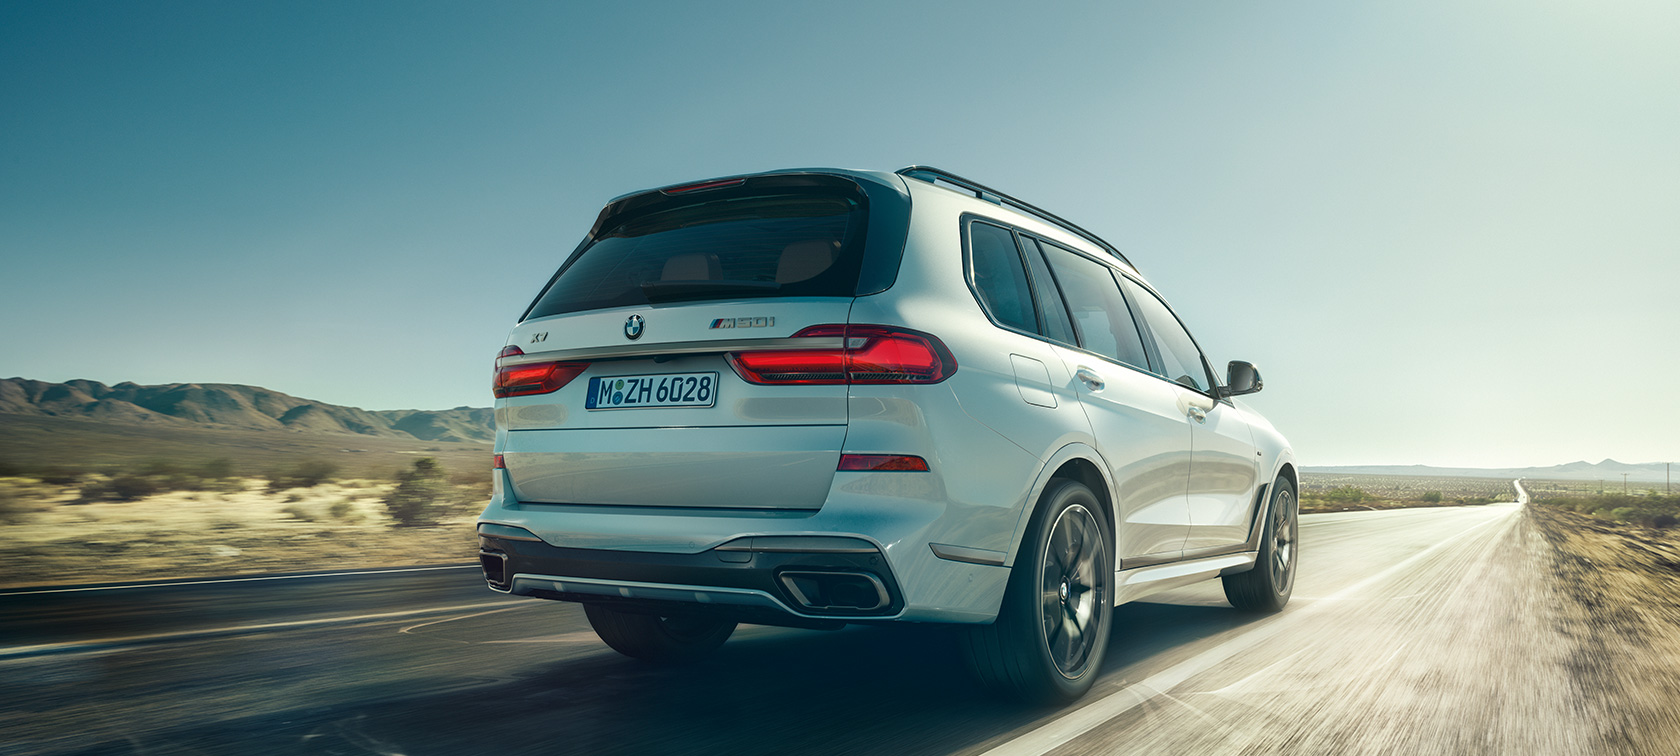 BMW X7 M50d in Mineral White, driving on an empty highway, rear view, G07, 2019